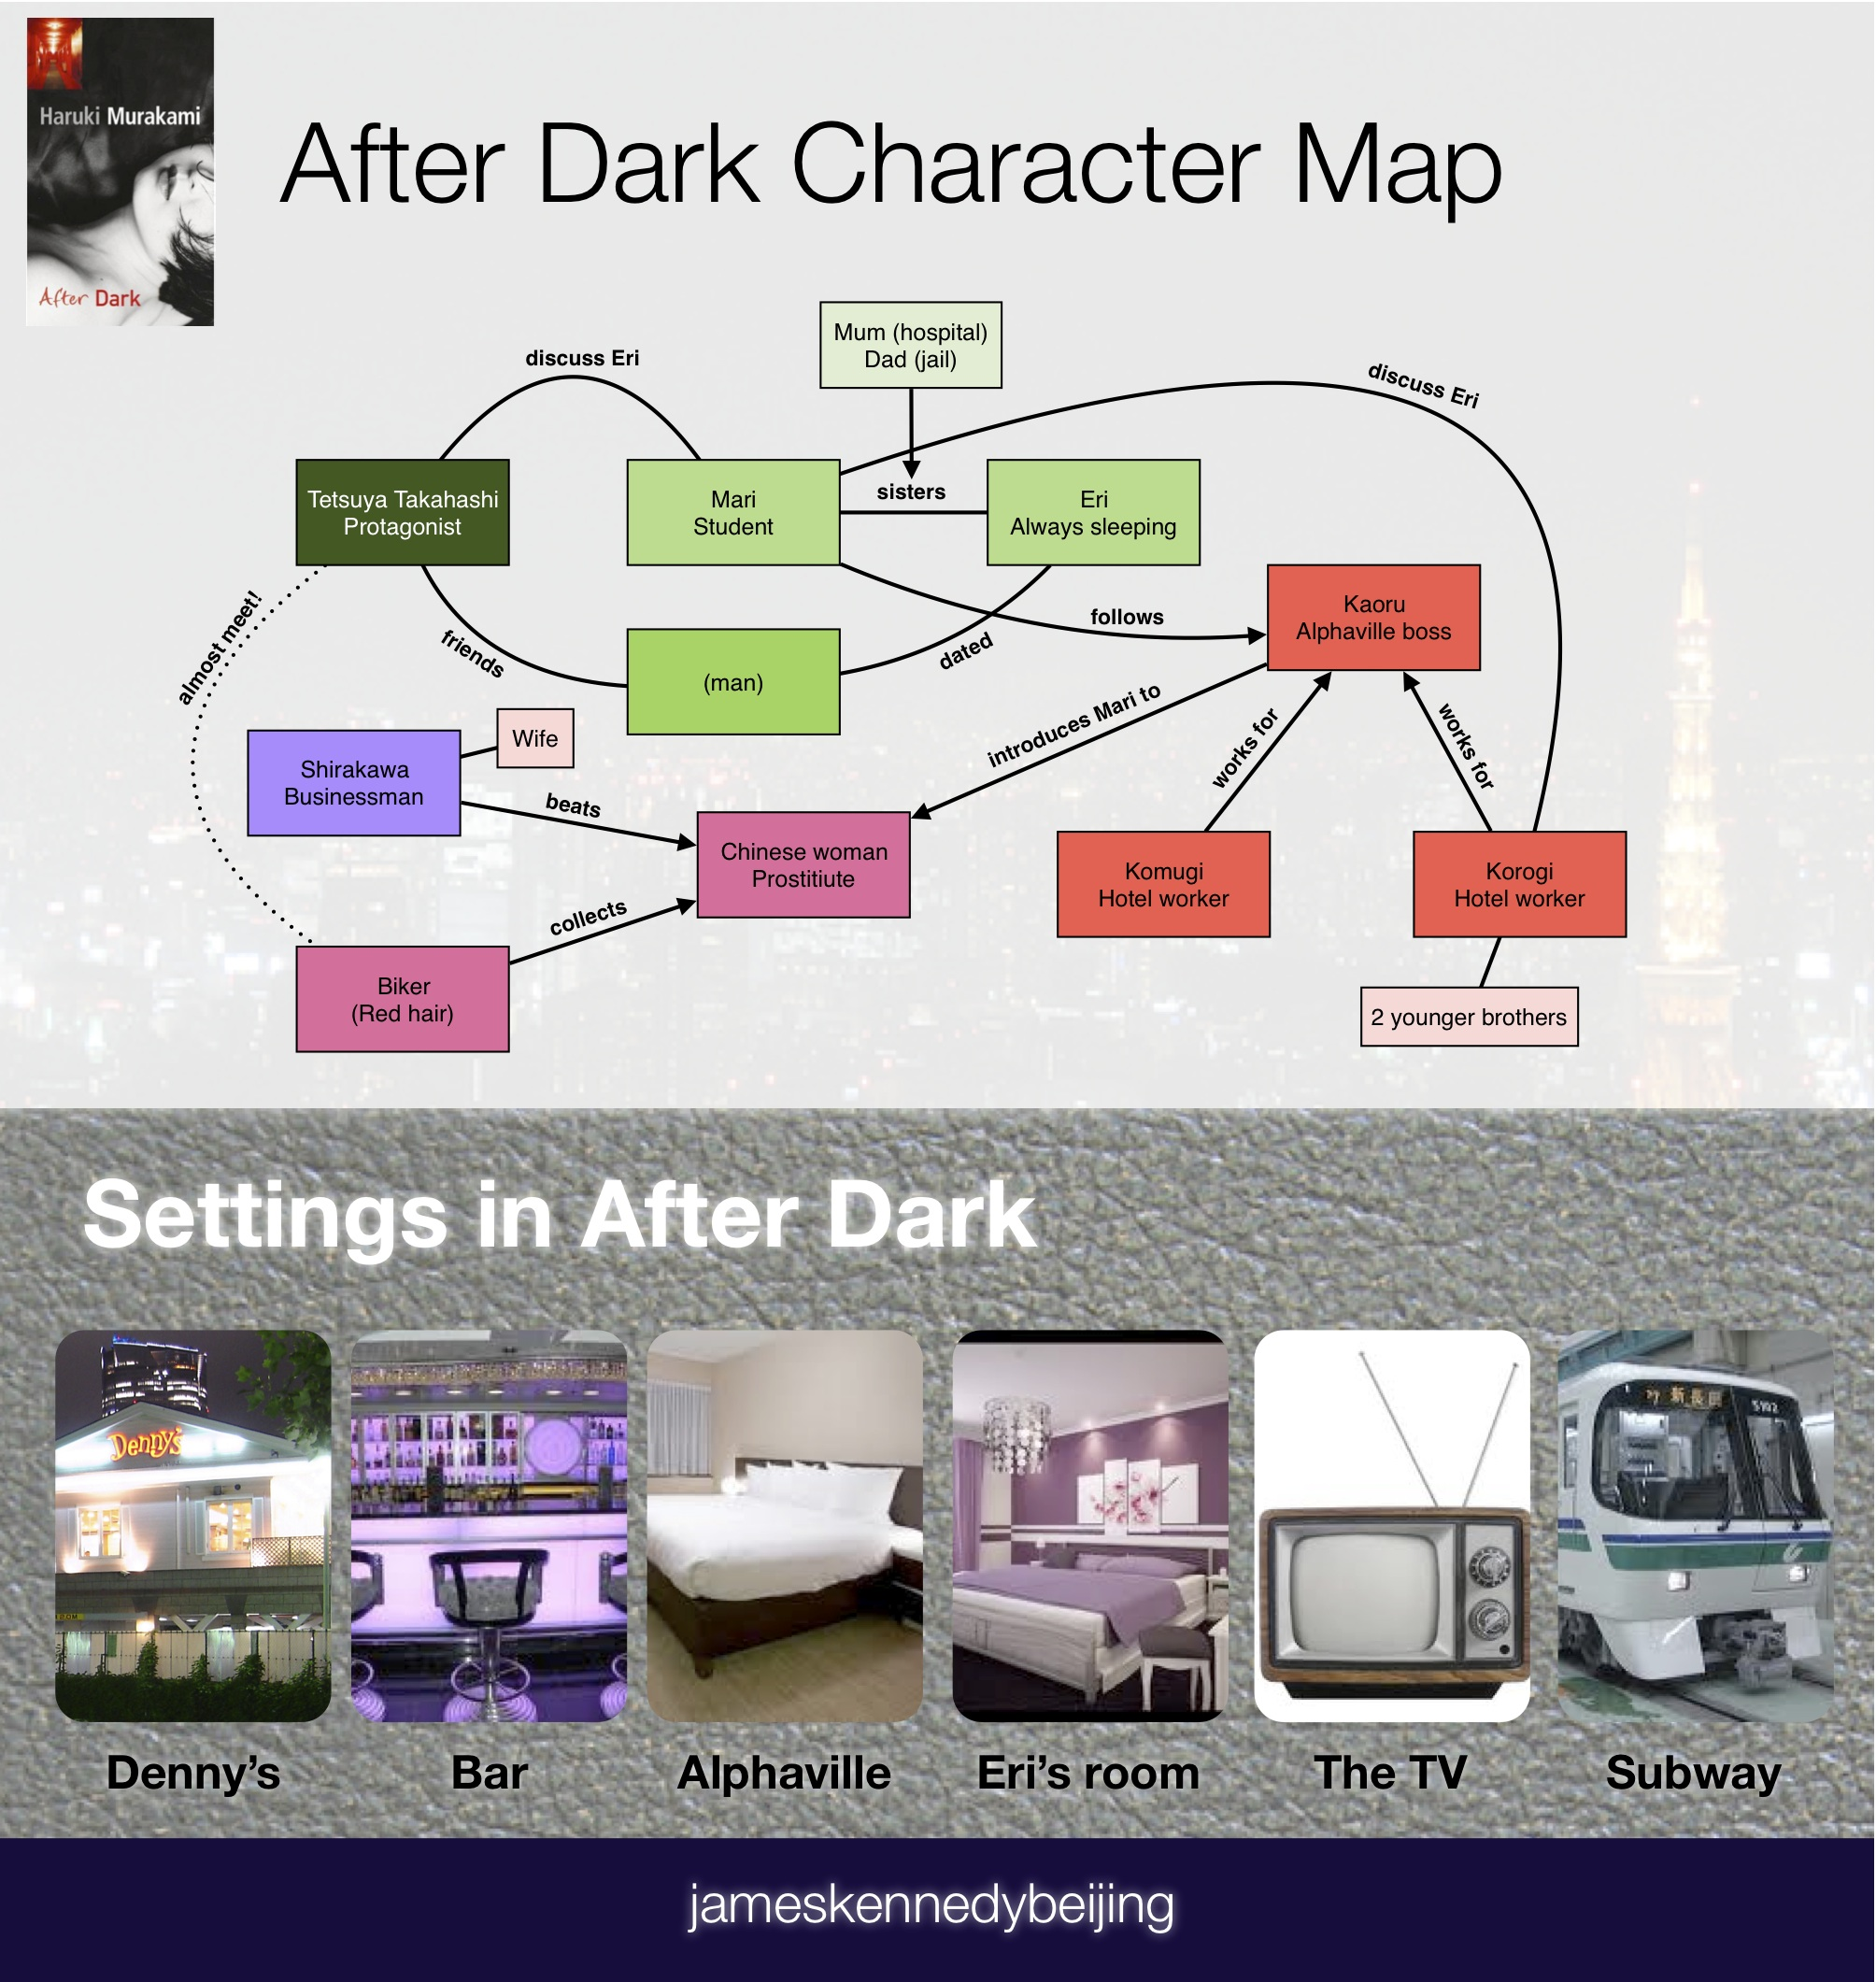 fiction james kennedy page 2 after dark character map